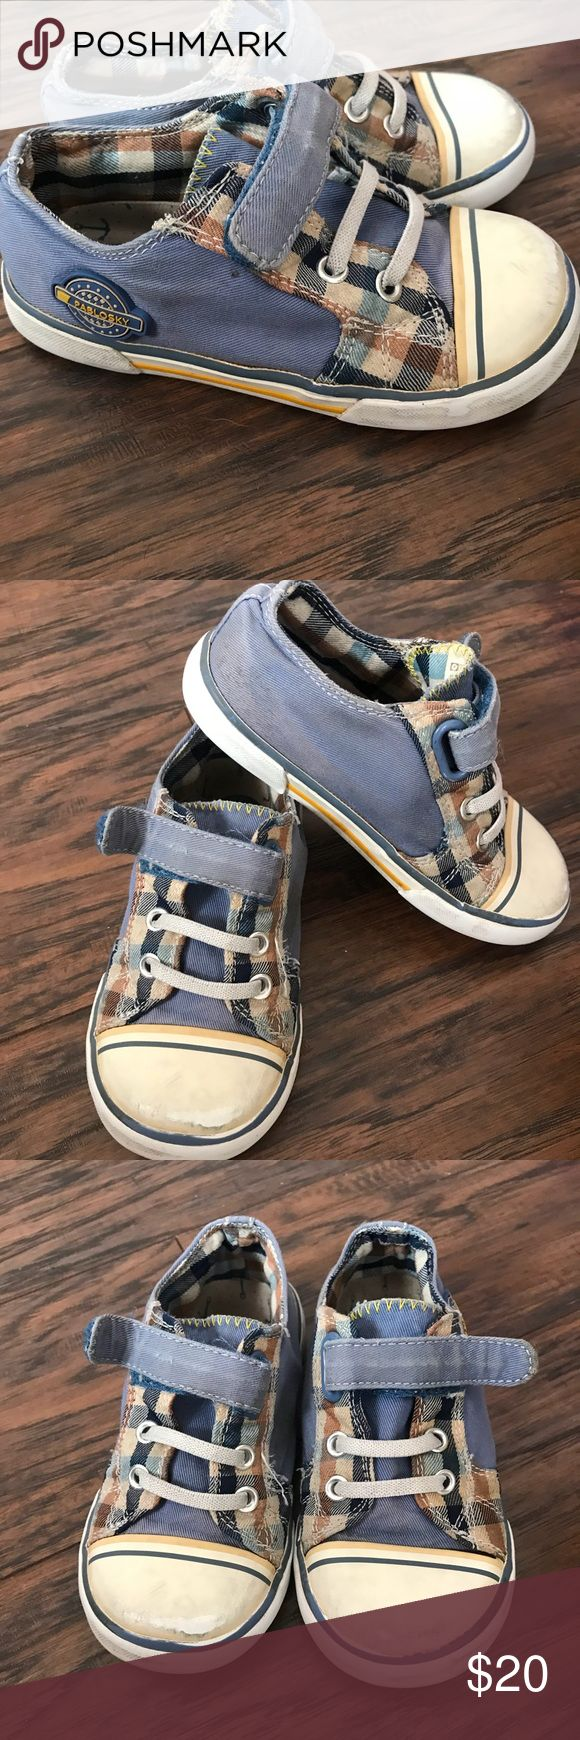 Pablo Sky shoes Size 9, used condition Pablosky Kids Shoes Sneakers